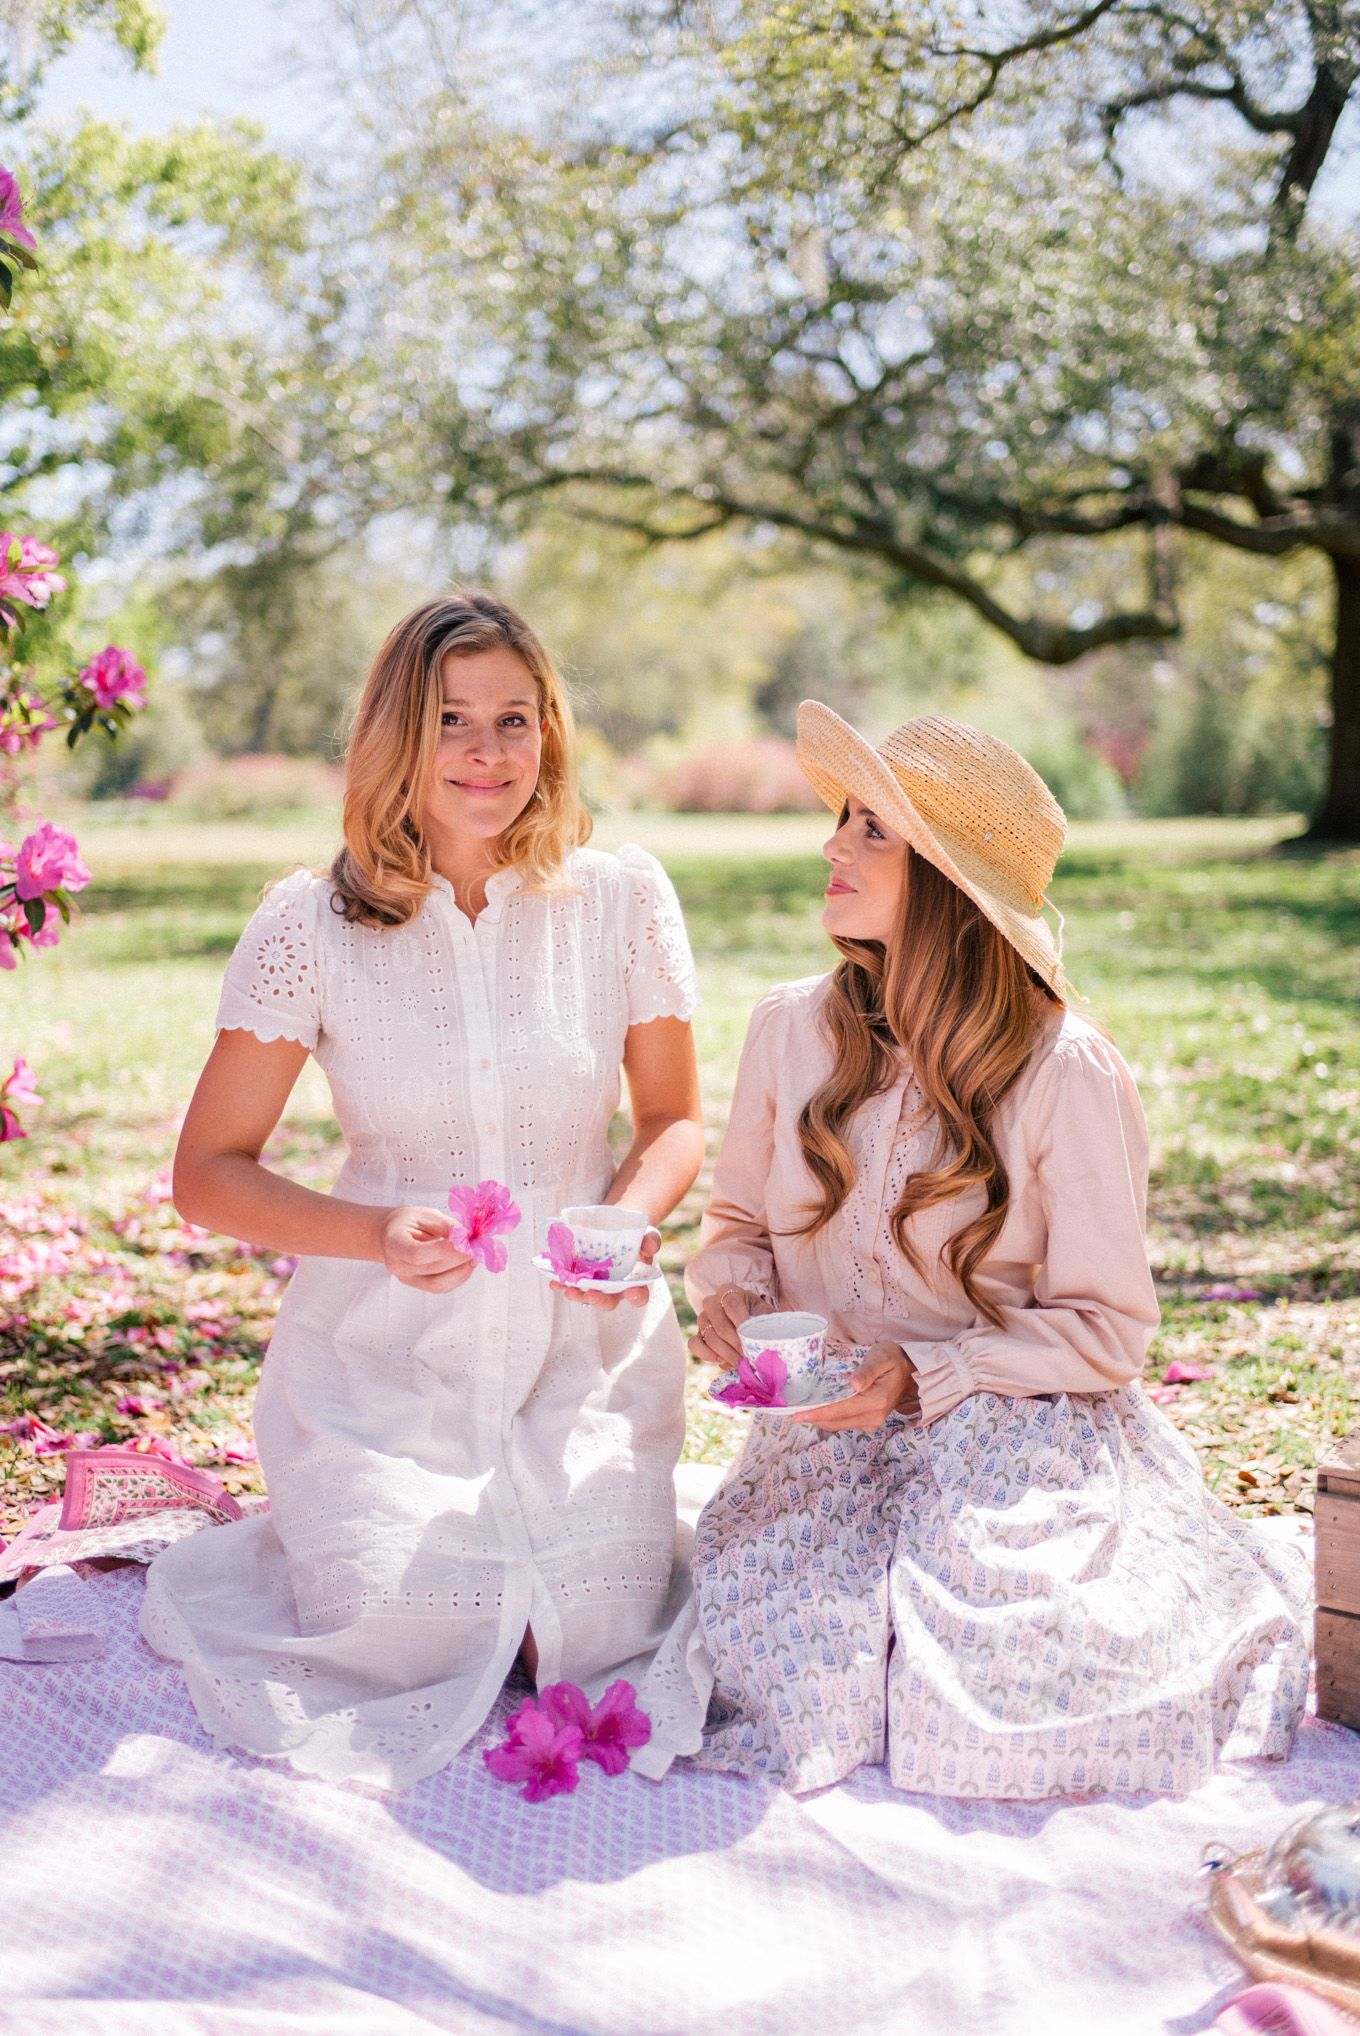 Azalea Tea Party Picnic Julia Berolzheimer Tea Party Outfits Gal Meets Glam Outdoor Party Outfits [ 2036 x 1360 Pixel ]